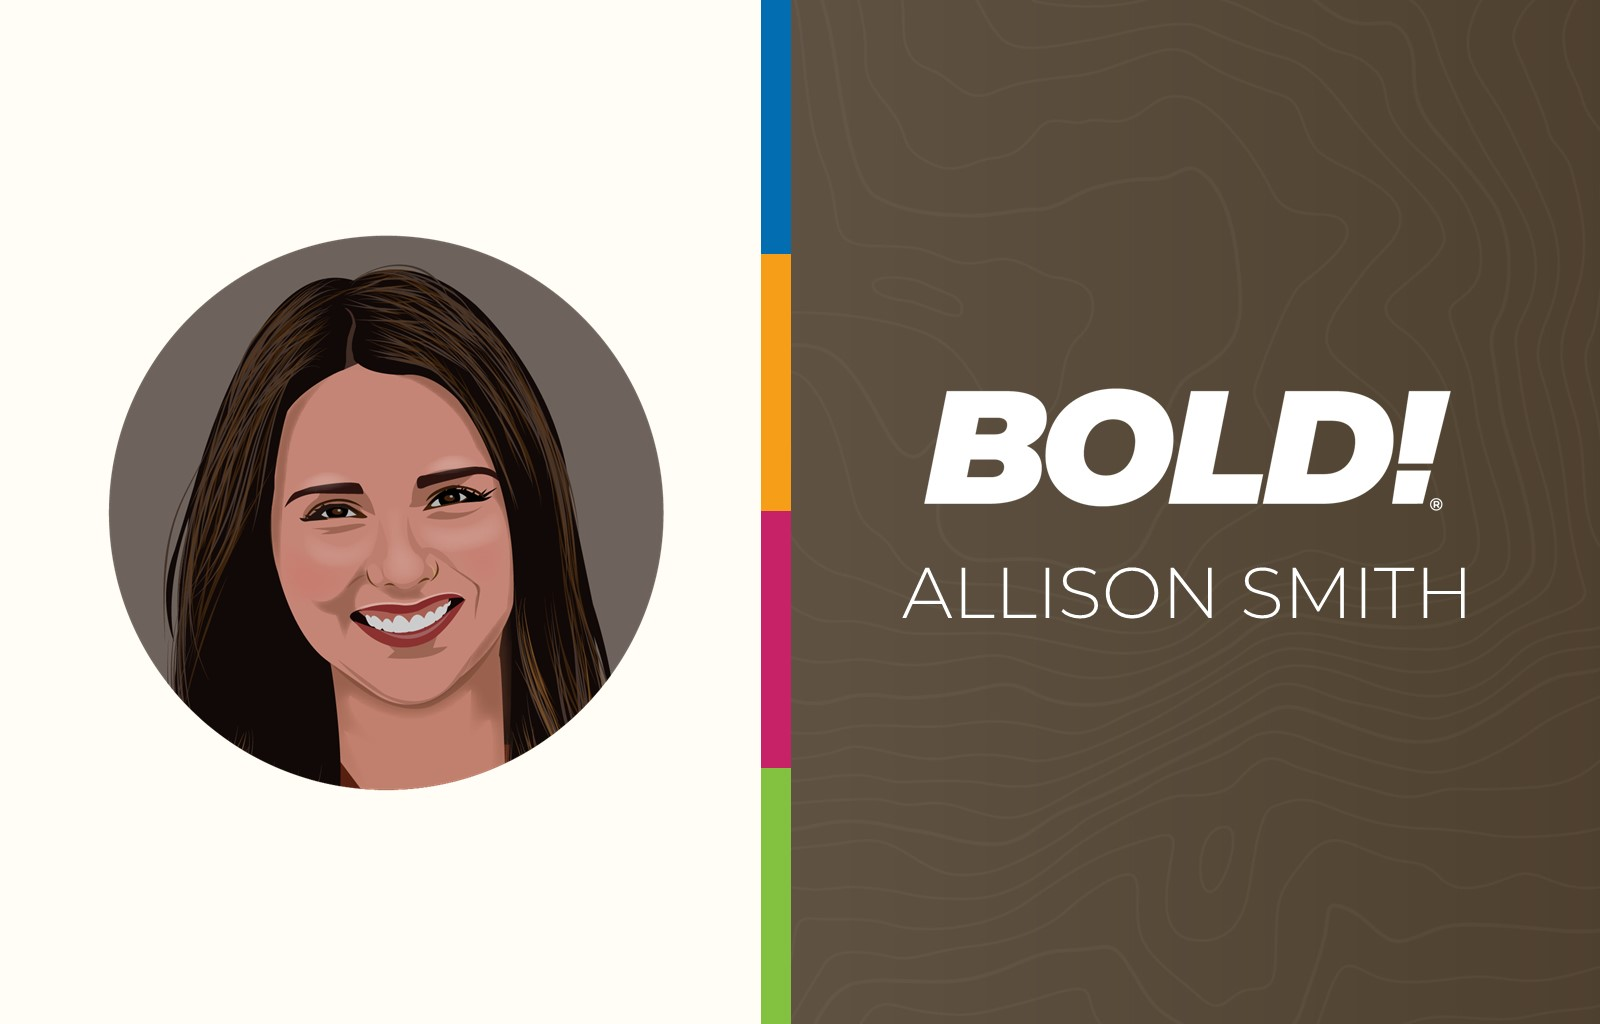 WelcomeAllison Smith -Campaigns and Media Manager